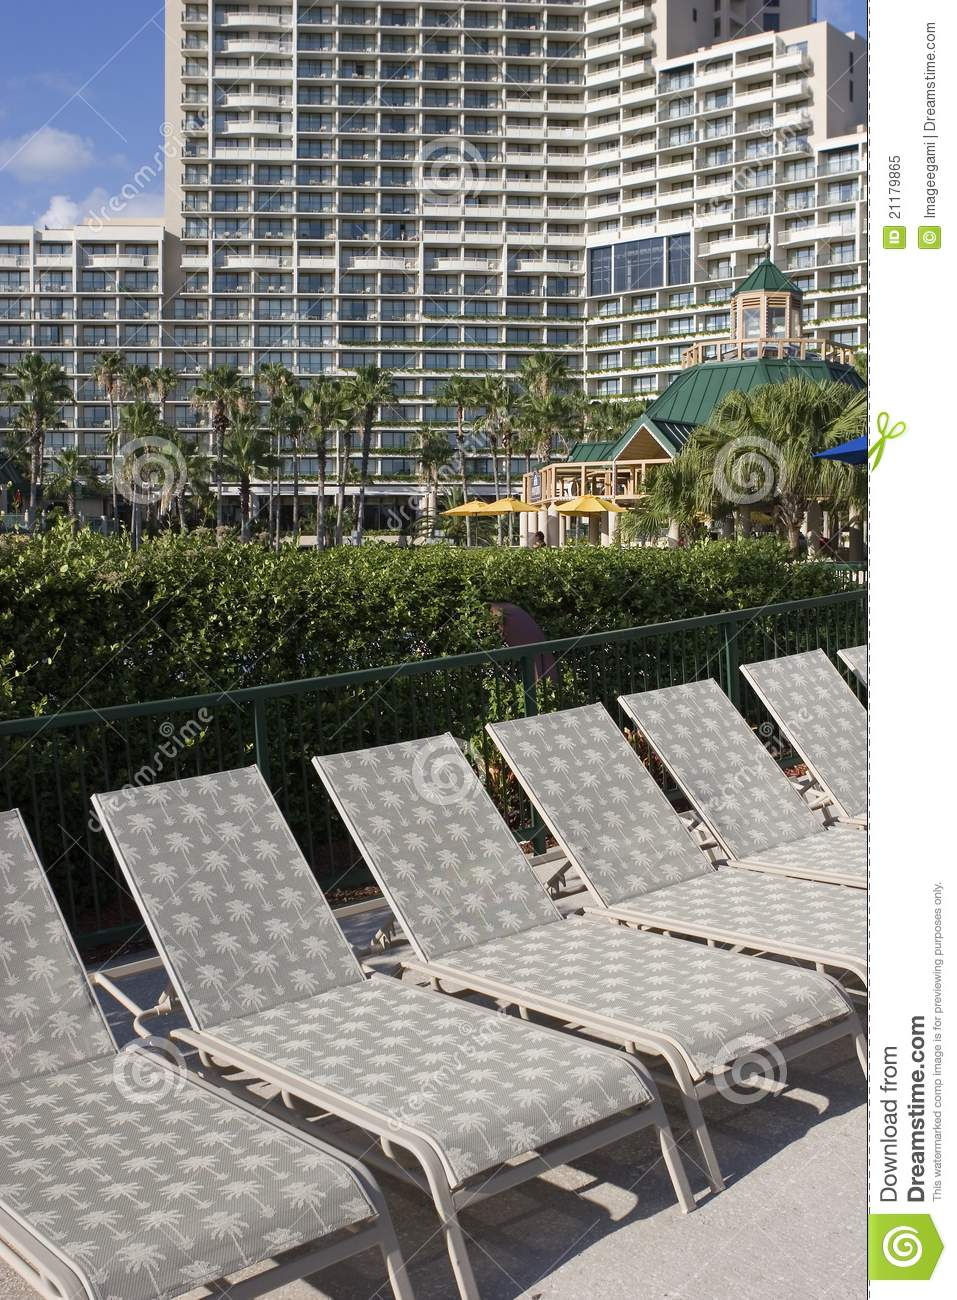 Lawn chairs at a hotel